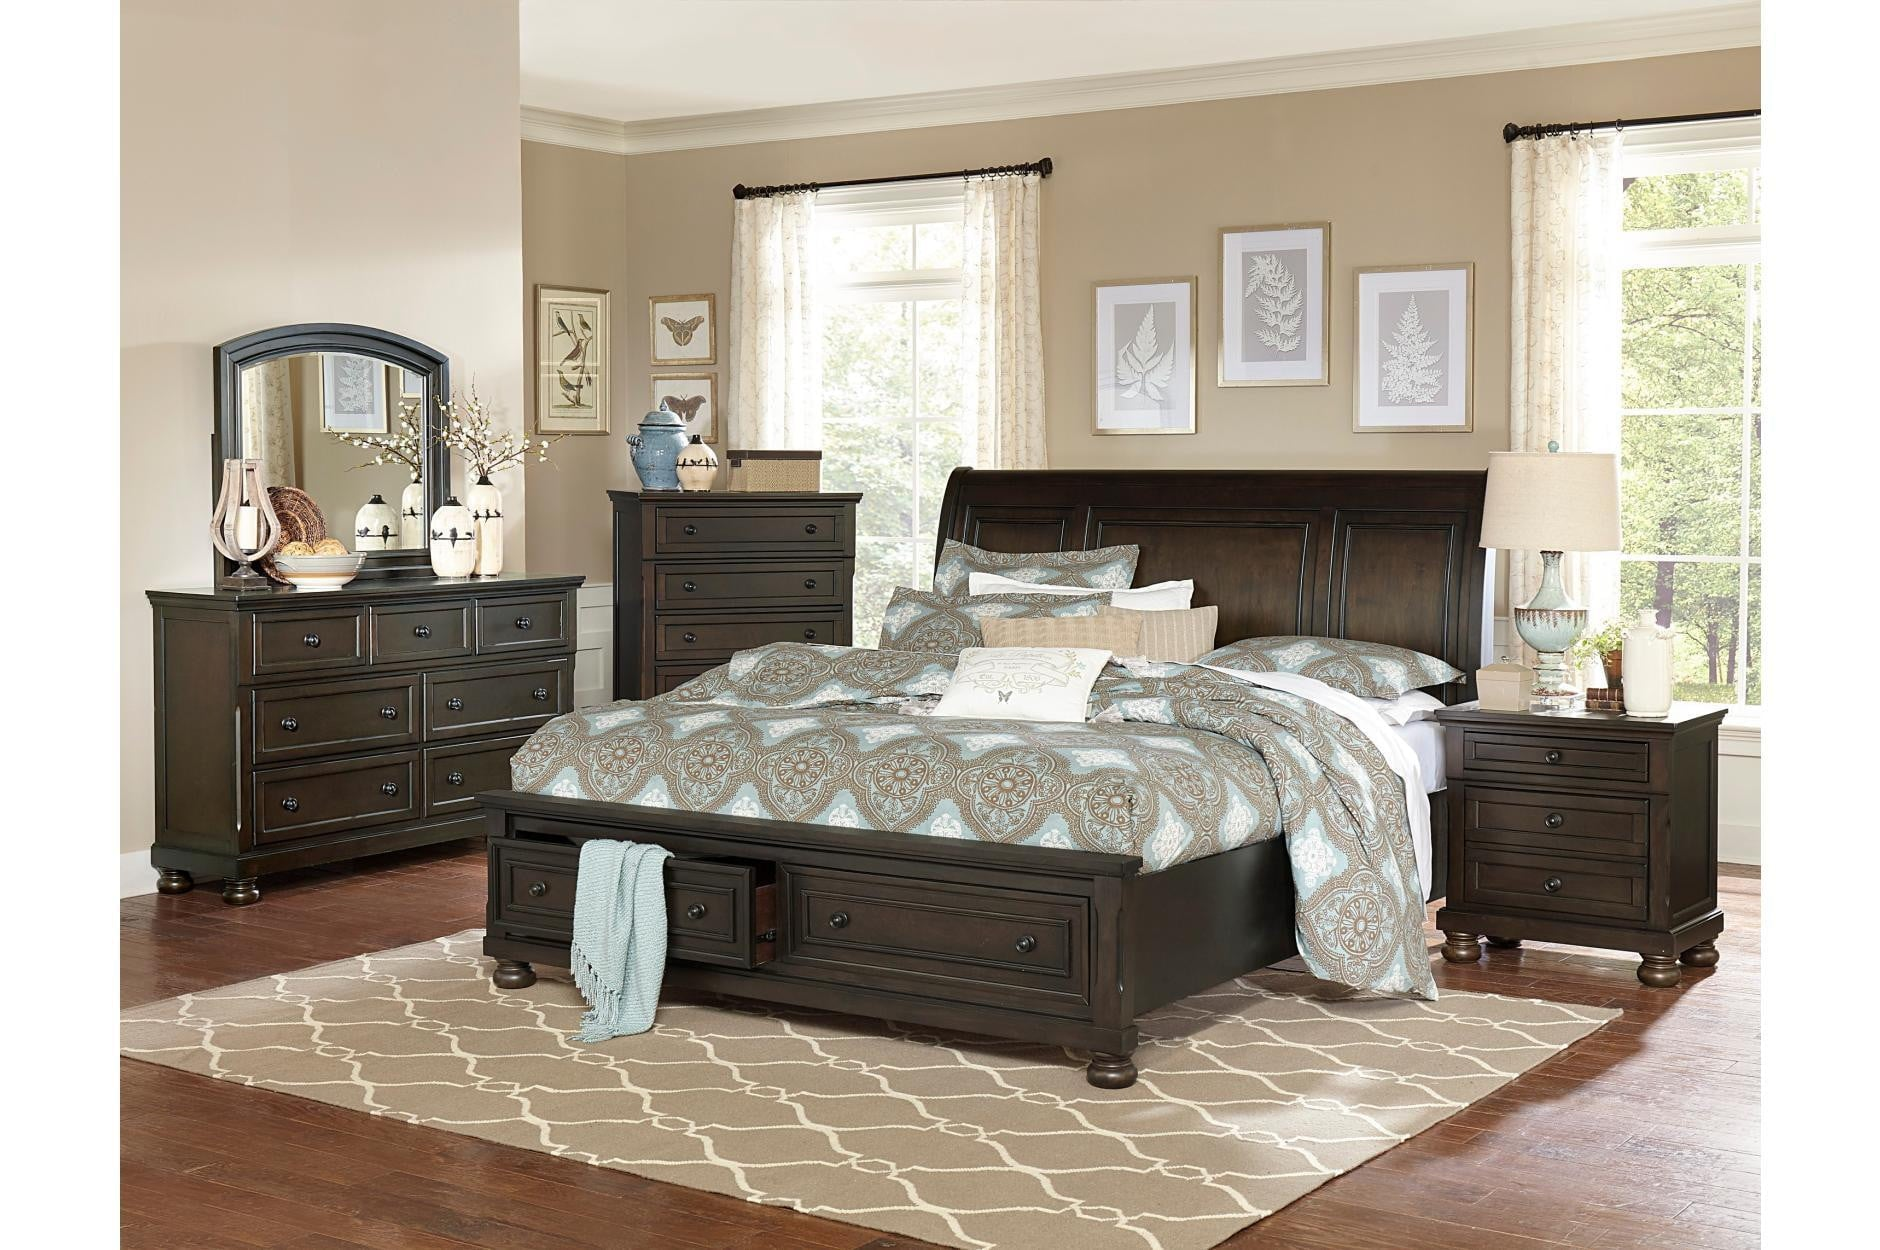 Bargain Prices With High Quality Felicia Bedroom Set In Kitchener Waterloo Cambridge Guelph Area Payless Furniture